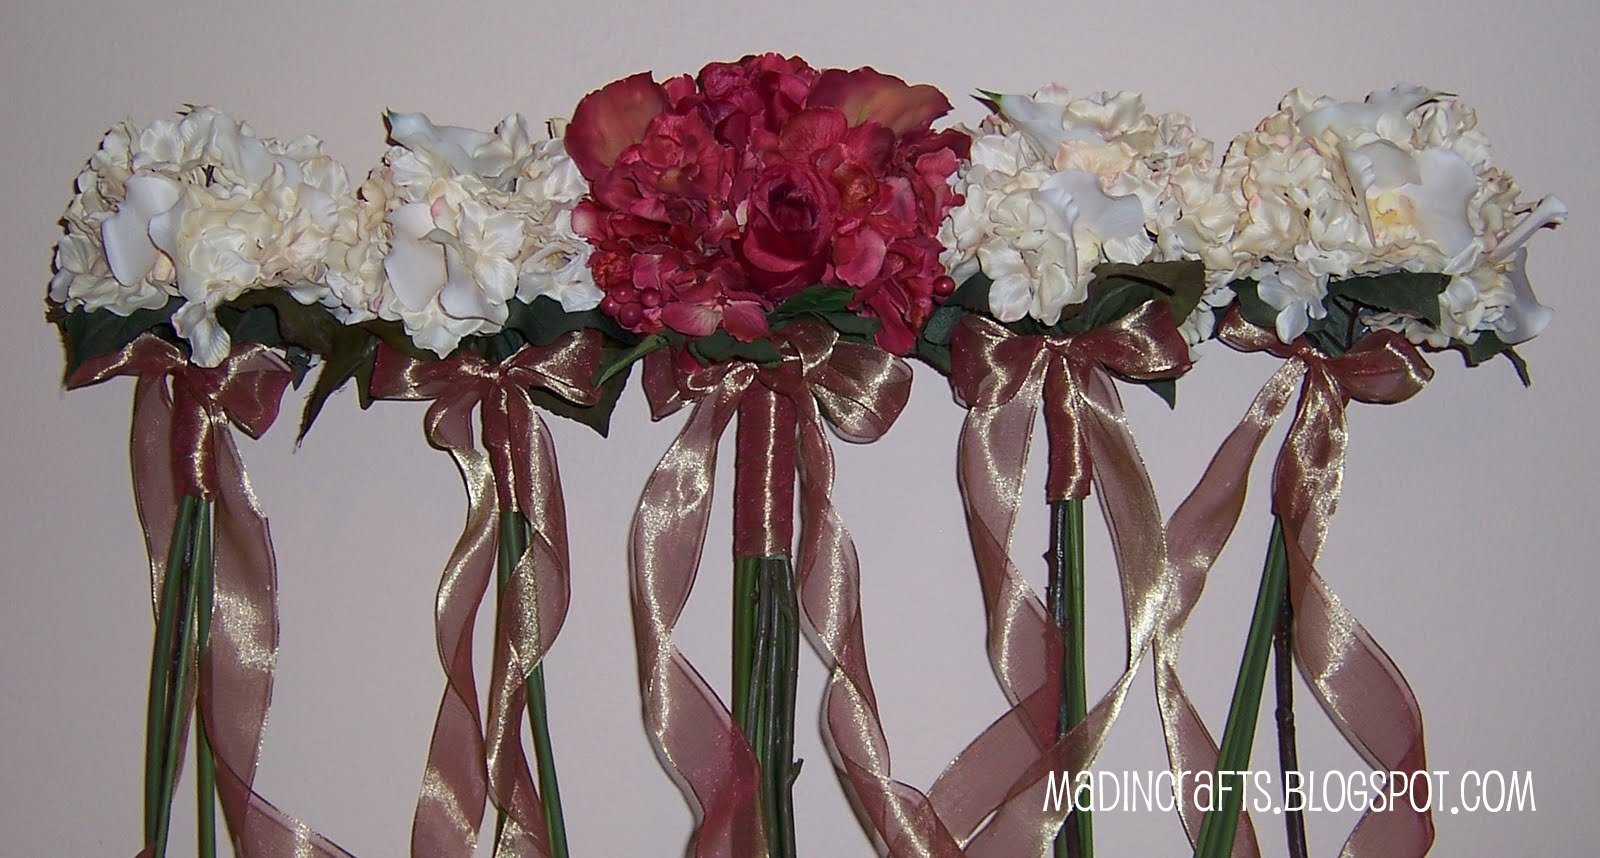 Wedding Crafts Brides And Bridesmaids Bouquets Mad In Crafts